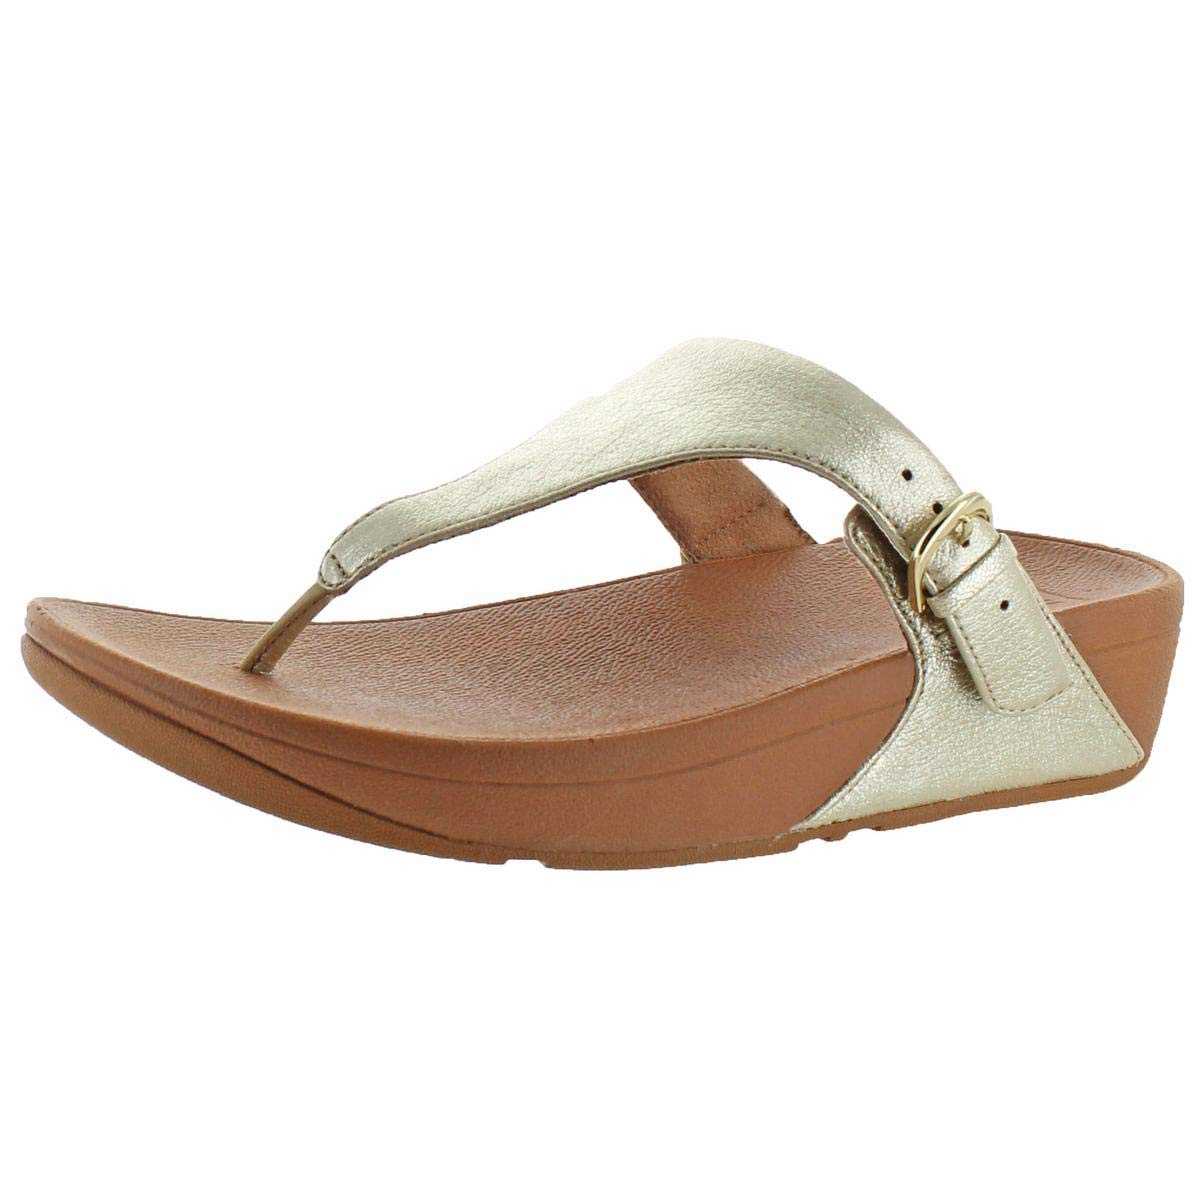 4a9624796af5ca Galleon - FitFlop Women s The Skinny Flip Flop Pale Gold 5 M US